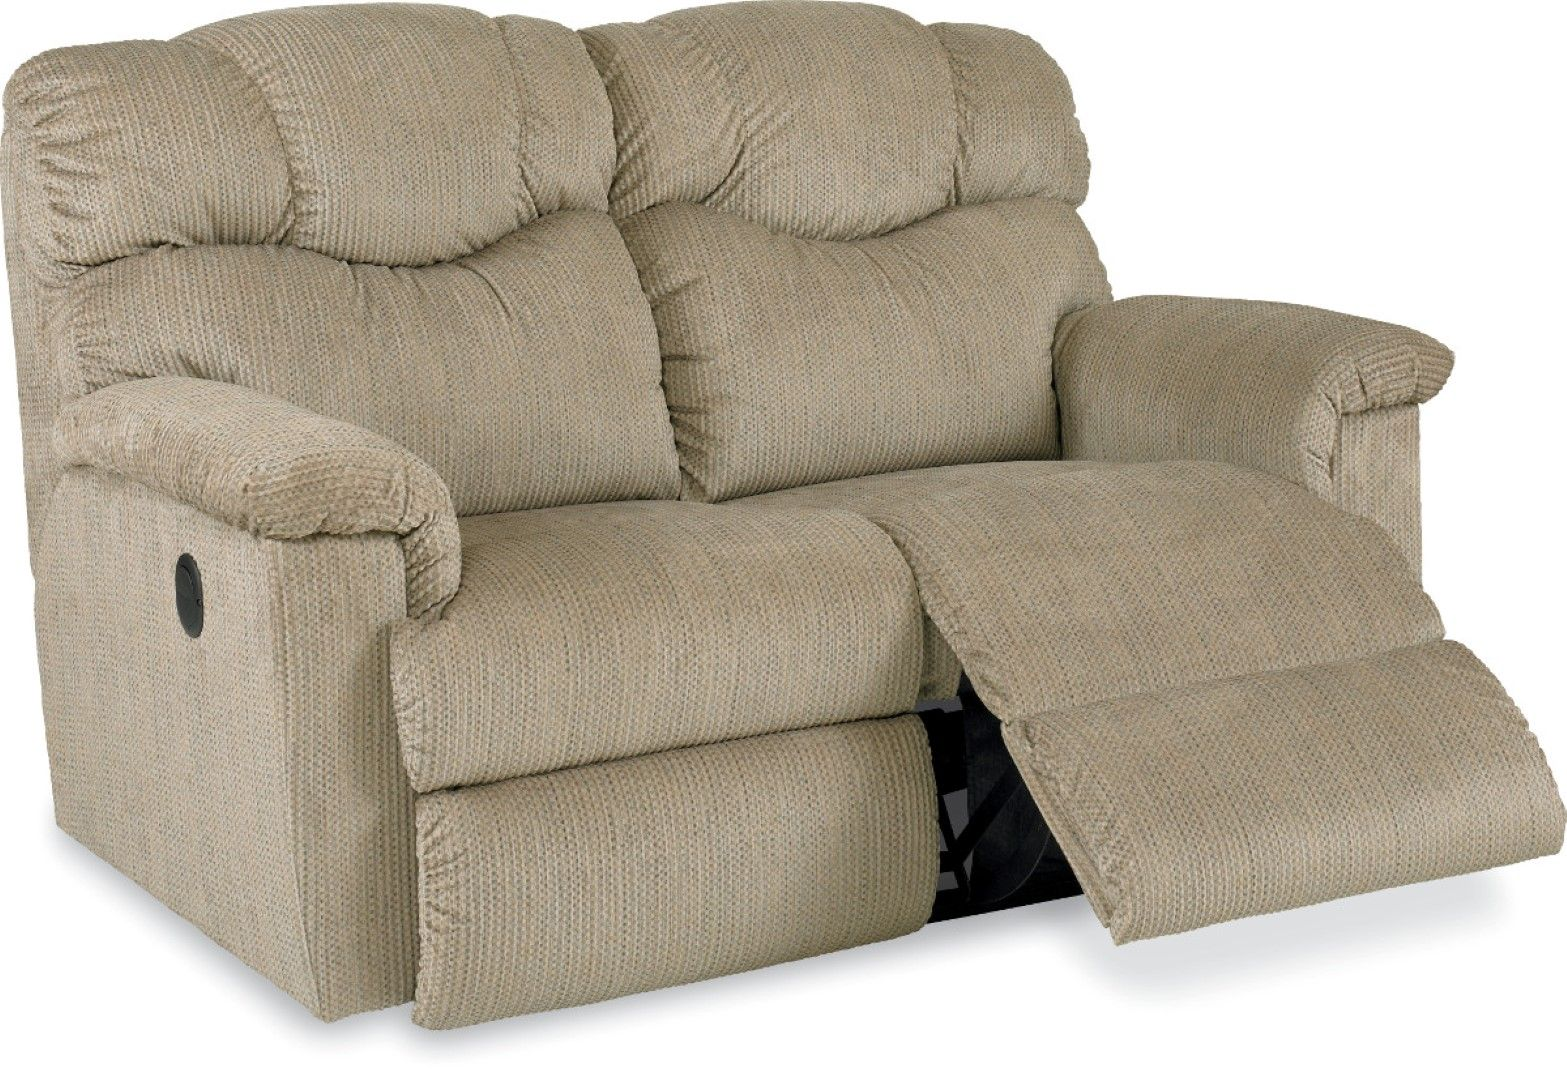 Lazy Boy Lancer Reclining Sofa Reviews in 2020 (With